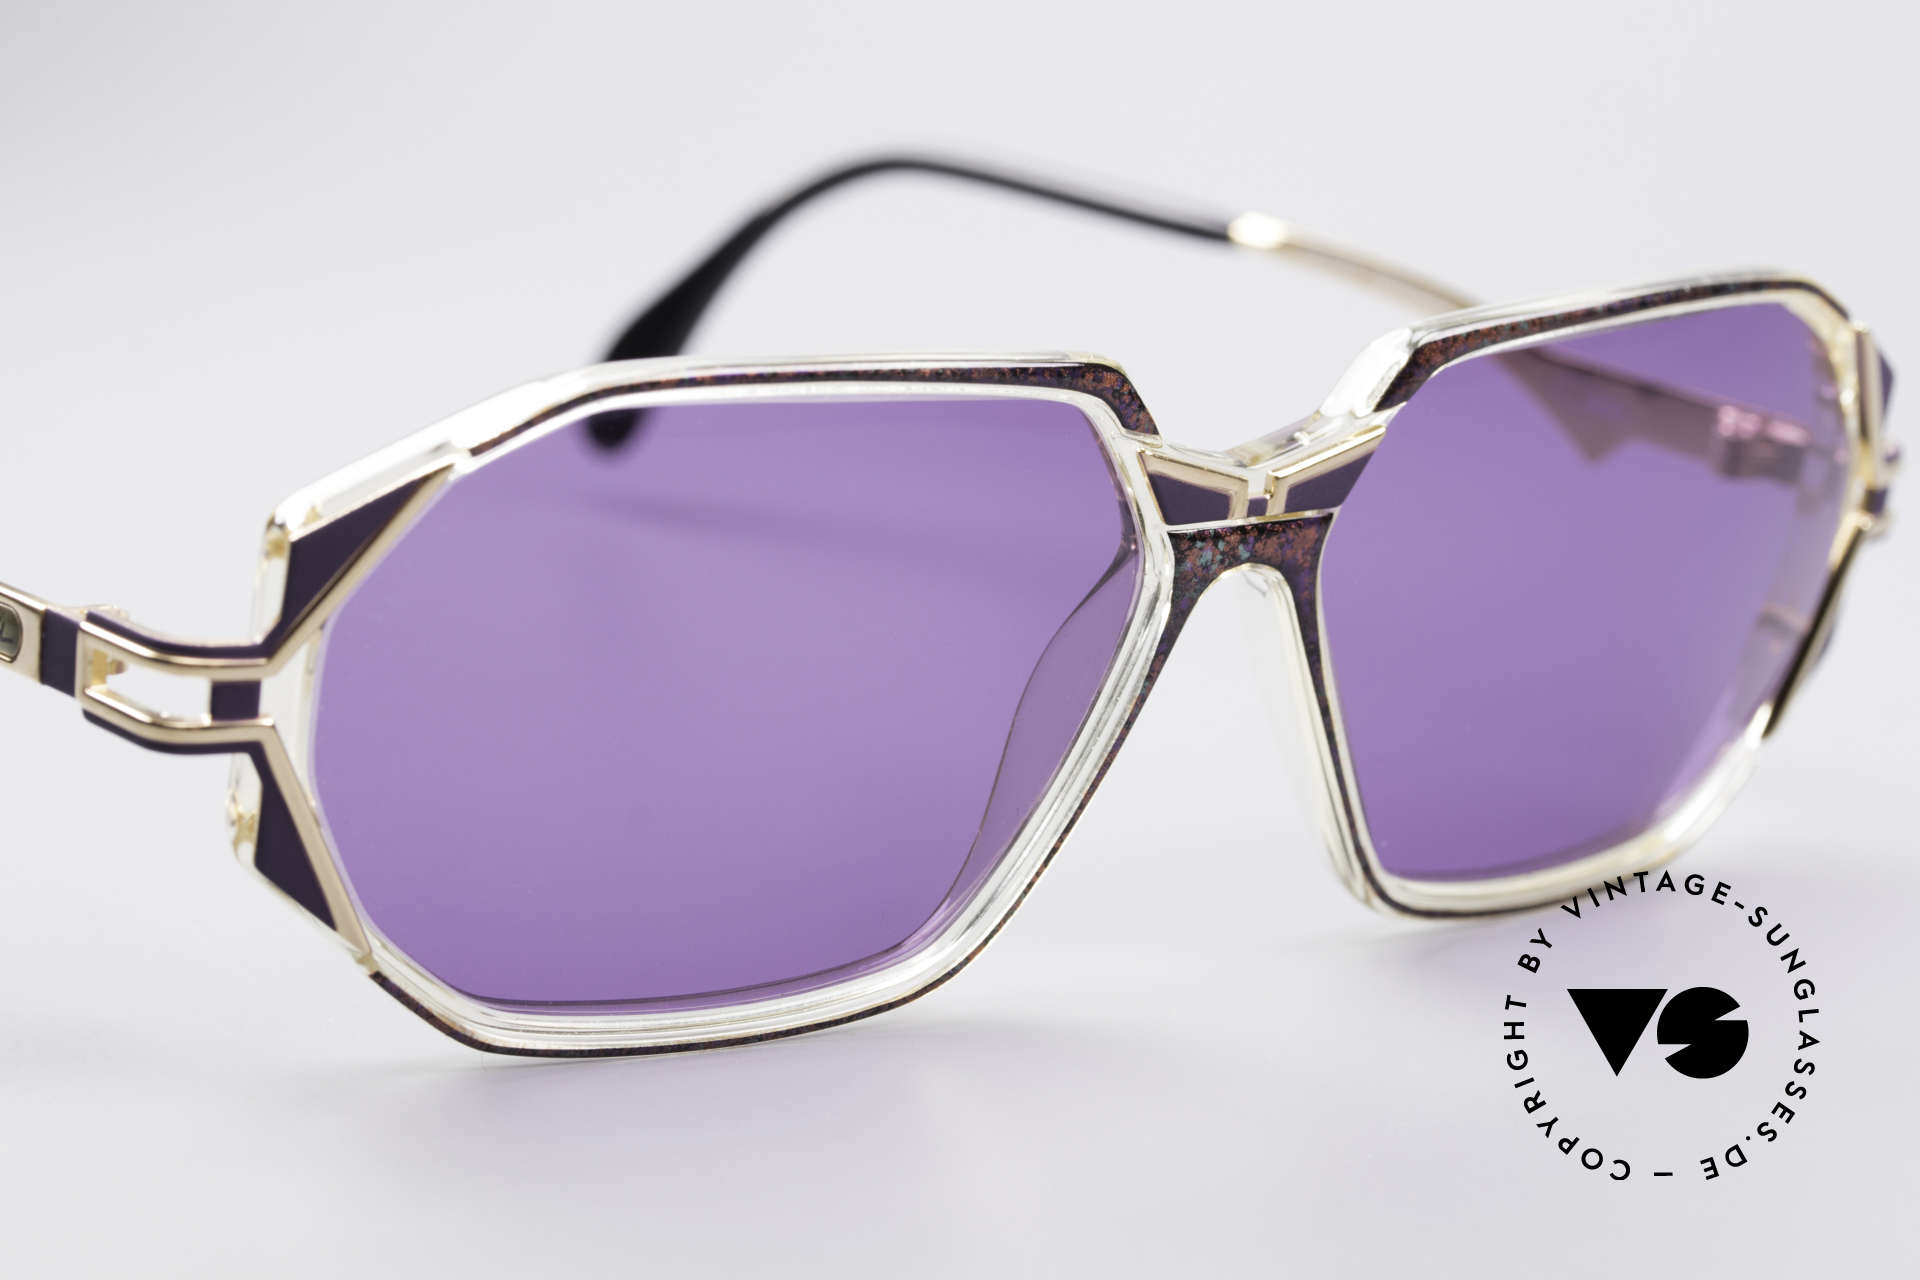 Cazal 361 Original 90's Sunglasses, never worn (like all our rare vintage CAZAL sunglasses), Made for Women